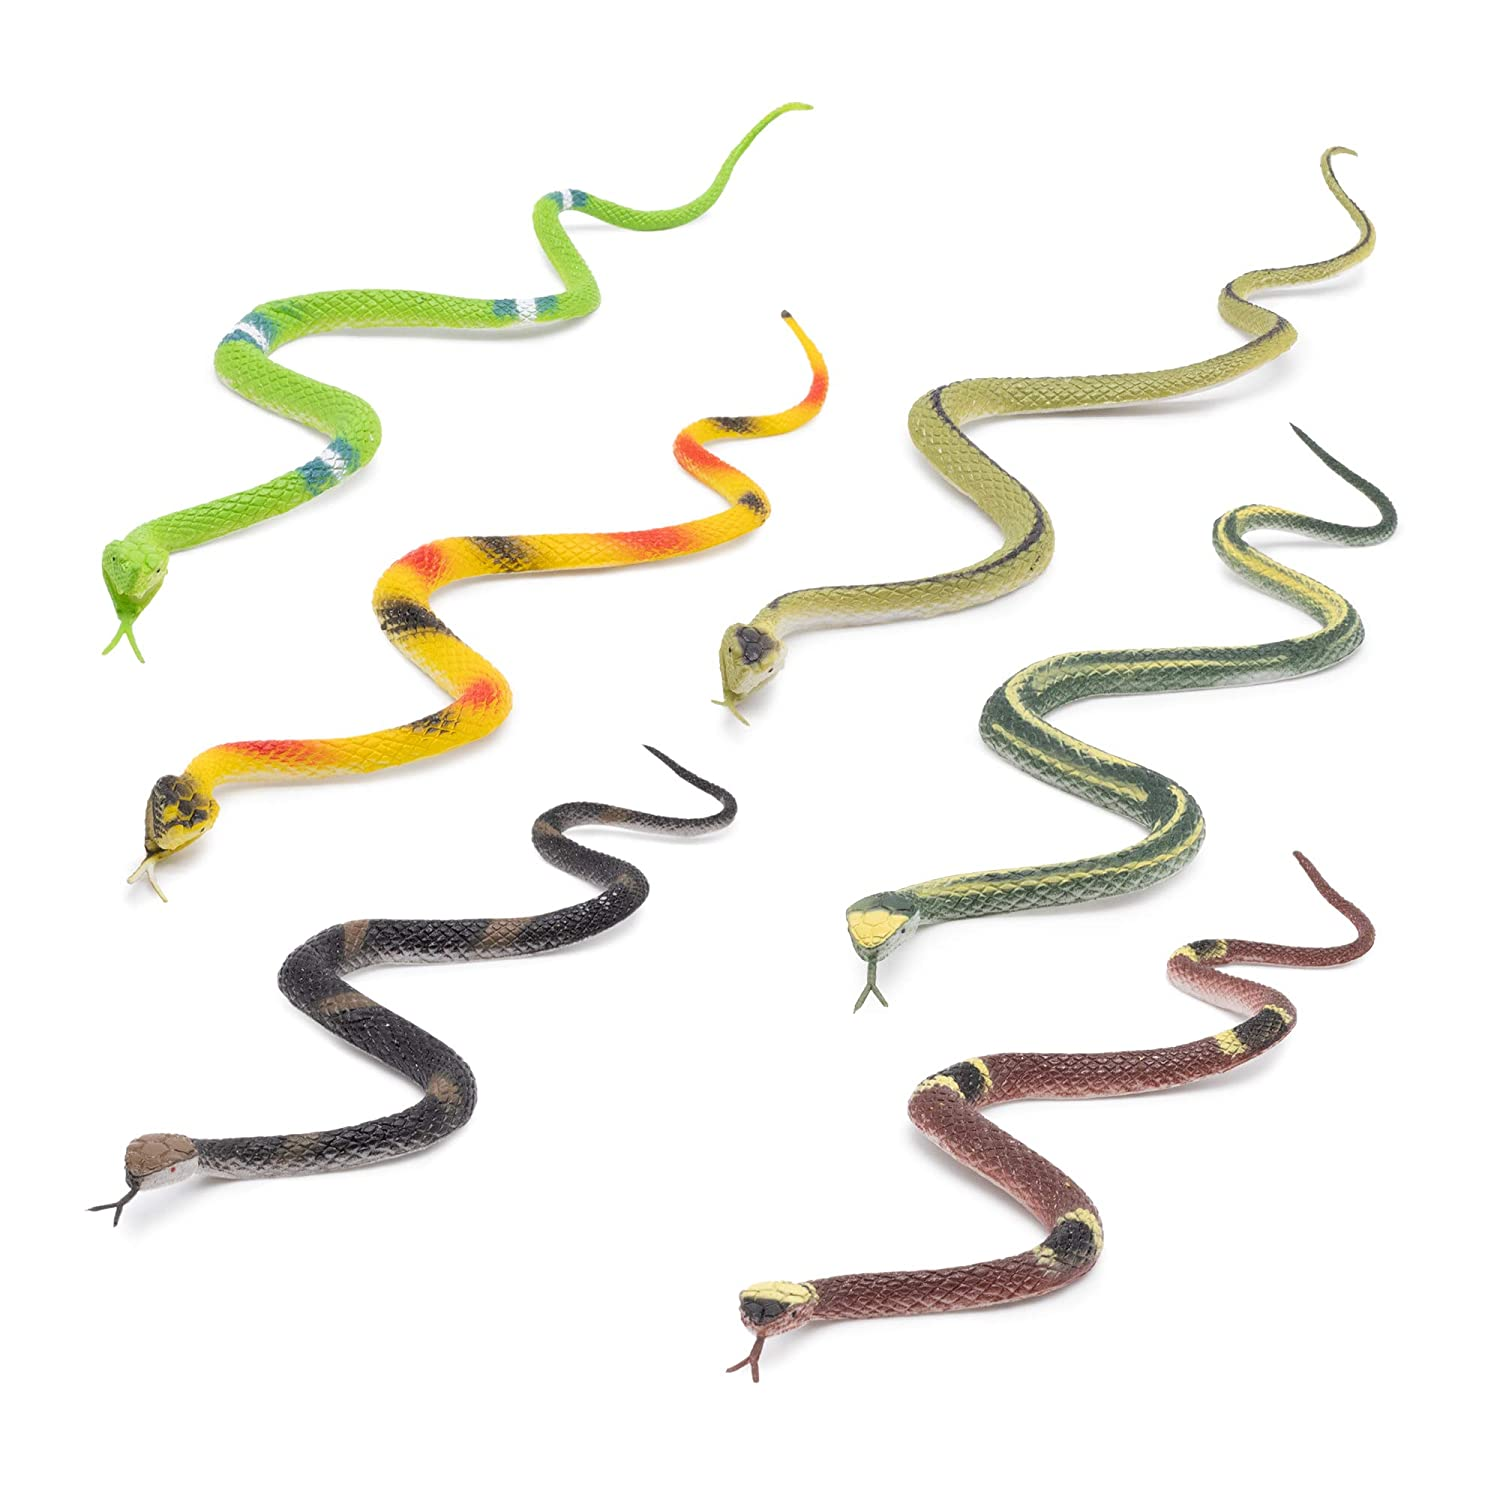 New Children Rubber Snakes Reptiles Rubber For Kids Toy Assorted Colors